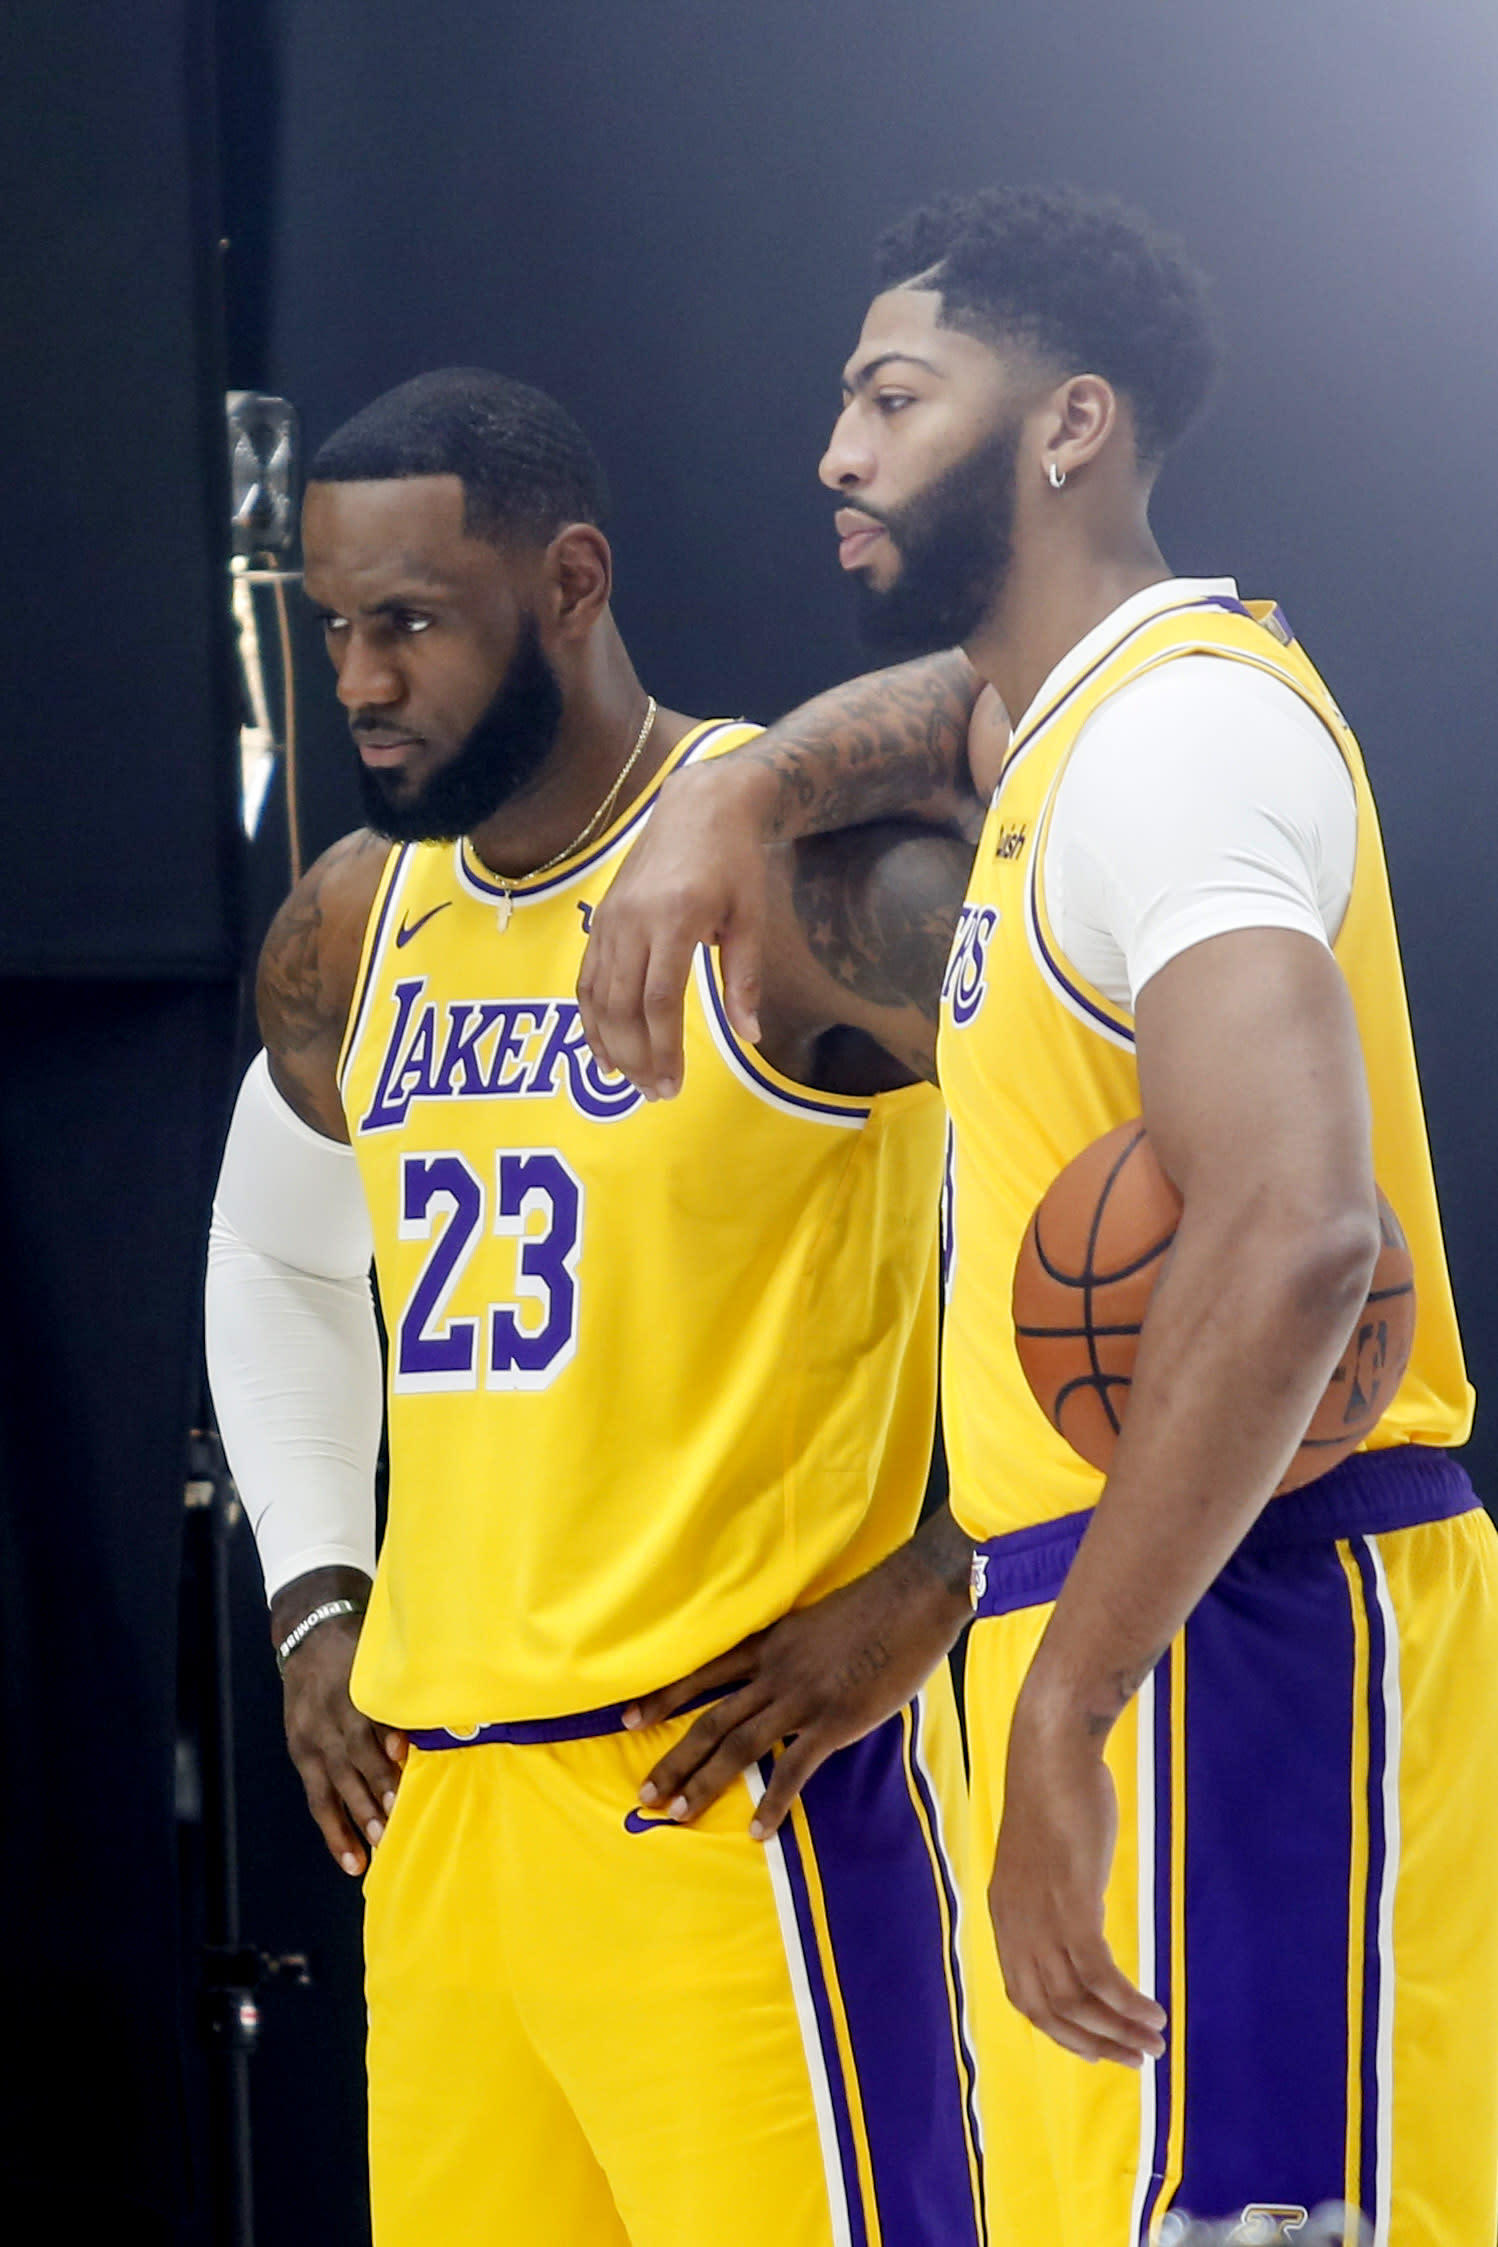 Los Angeles Lakers forwards LeBron James, leftt, and Anthony Davis, right, pose for photos during the NBA basketball team's media day in El Segundo, Calif., Friday, Sept. 27, 2019. (AP Photo/Ringo H.W. Chiu)